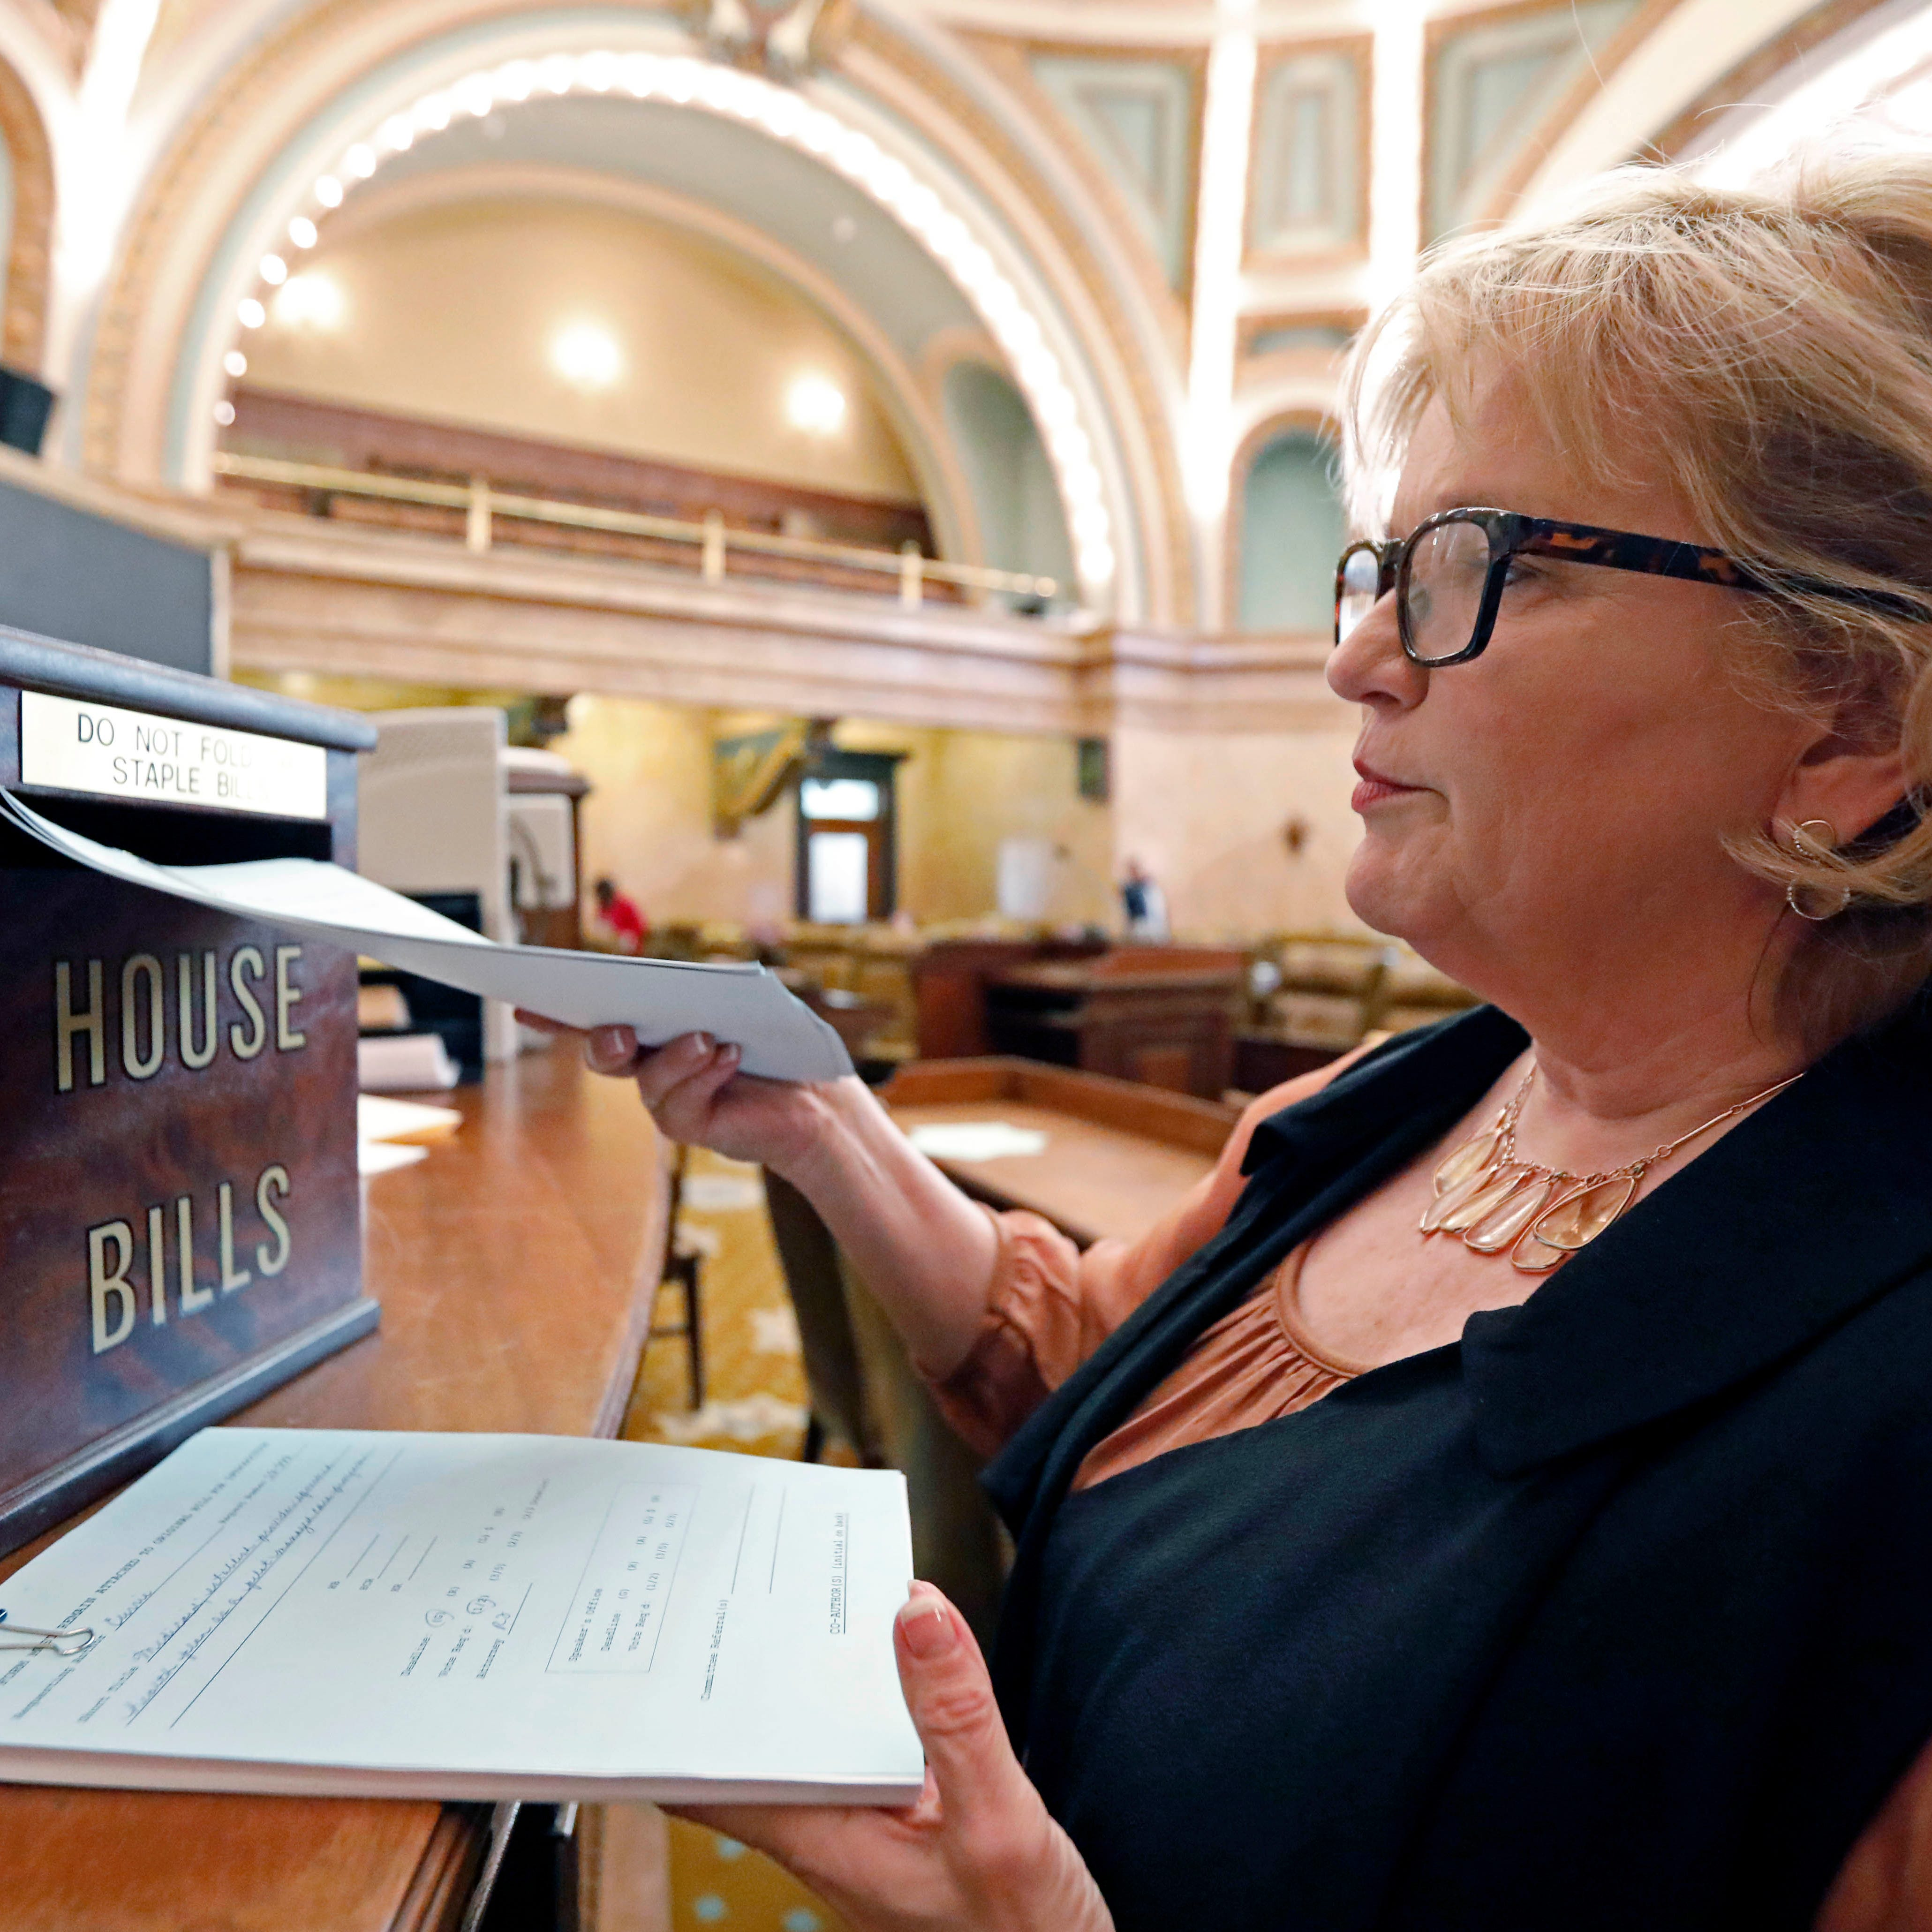 Rep. Becky Currie, R-Brookhaven, files a number of bills in House chambers at the Capitol in Jackson, Miss., Thursday, Jan. 10, 2019. Lawmakers have several days to file proposed legislation before deadline.